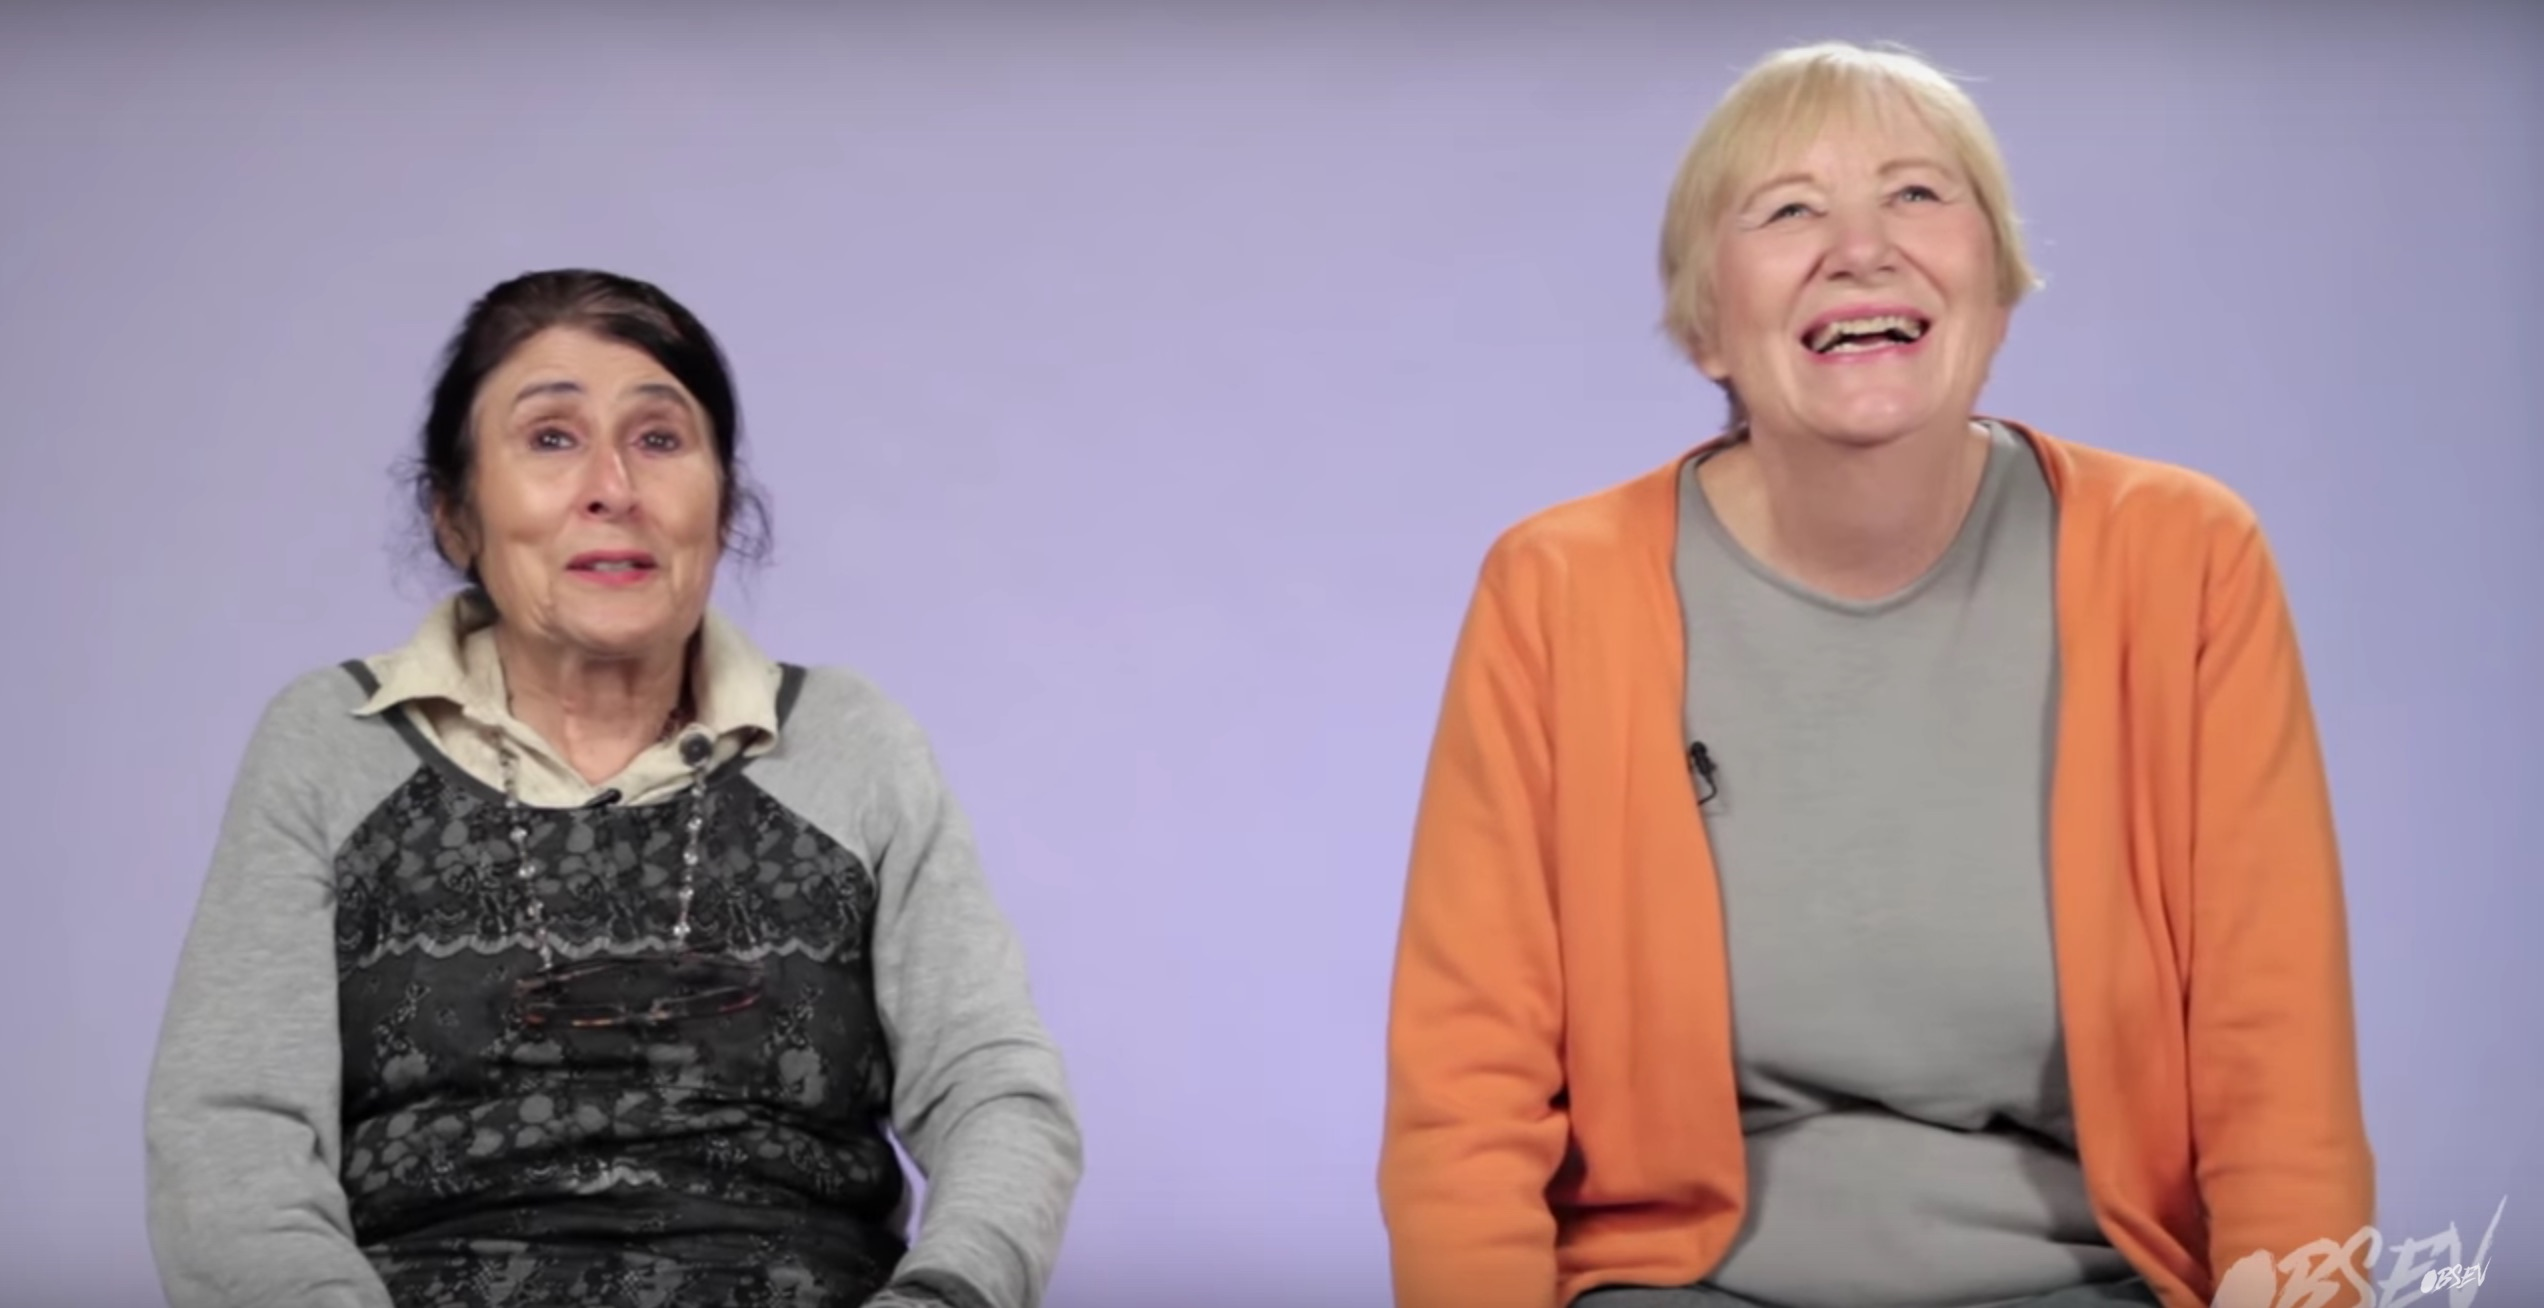 These grandmas just can't even with Millennial slang